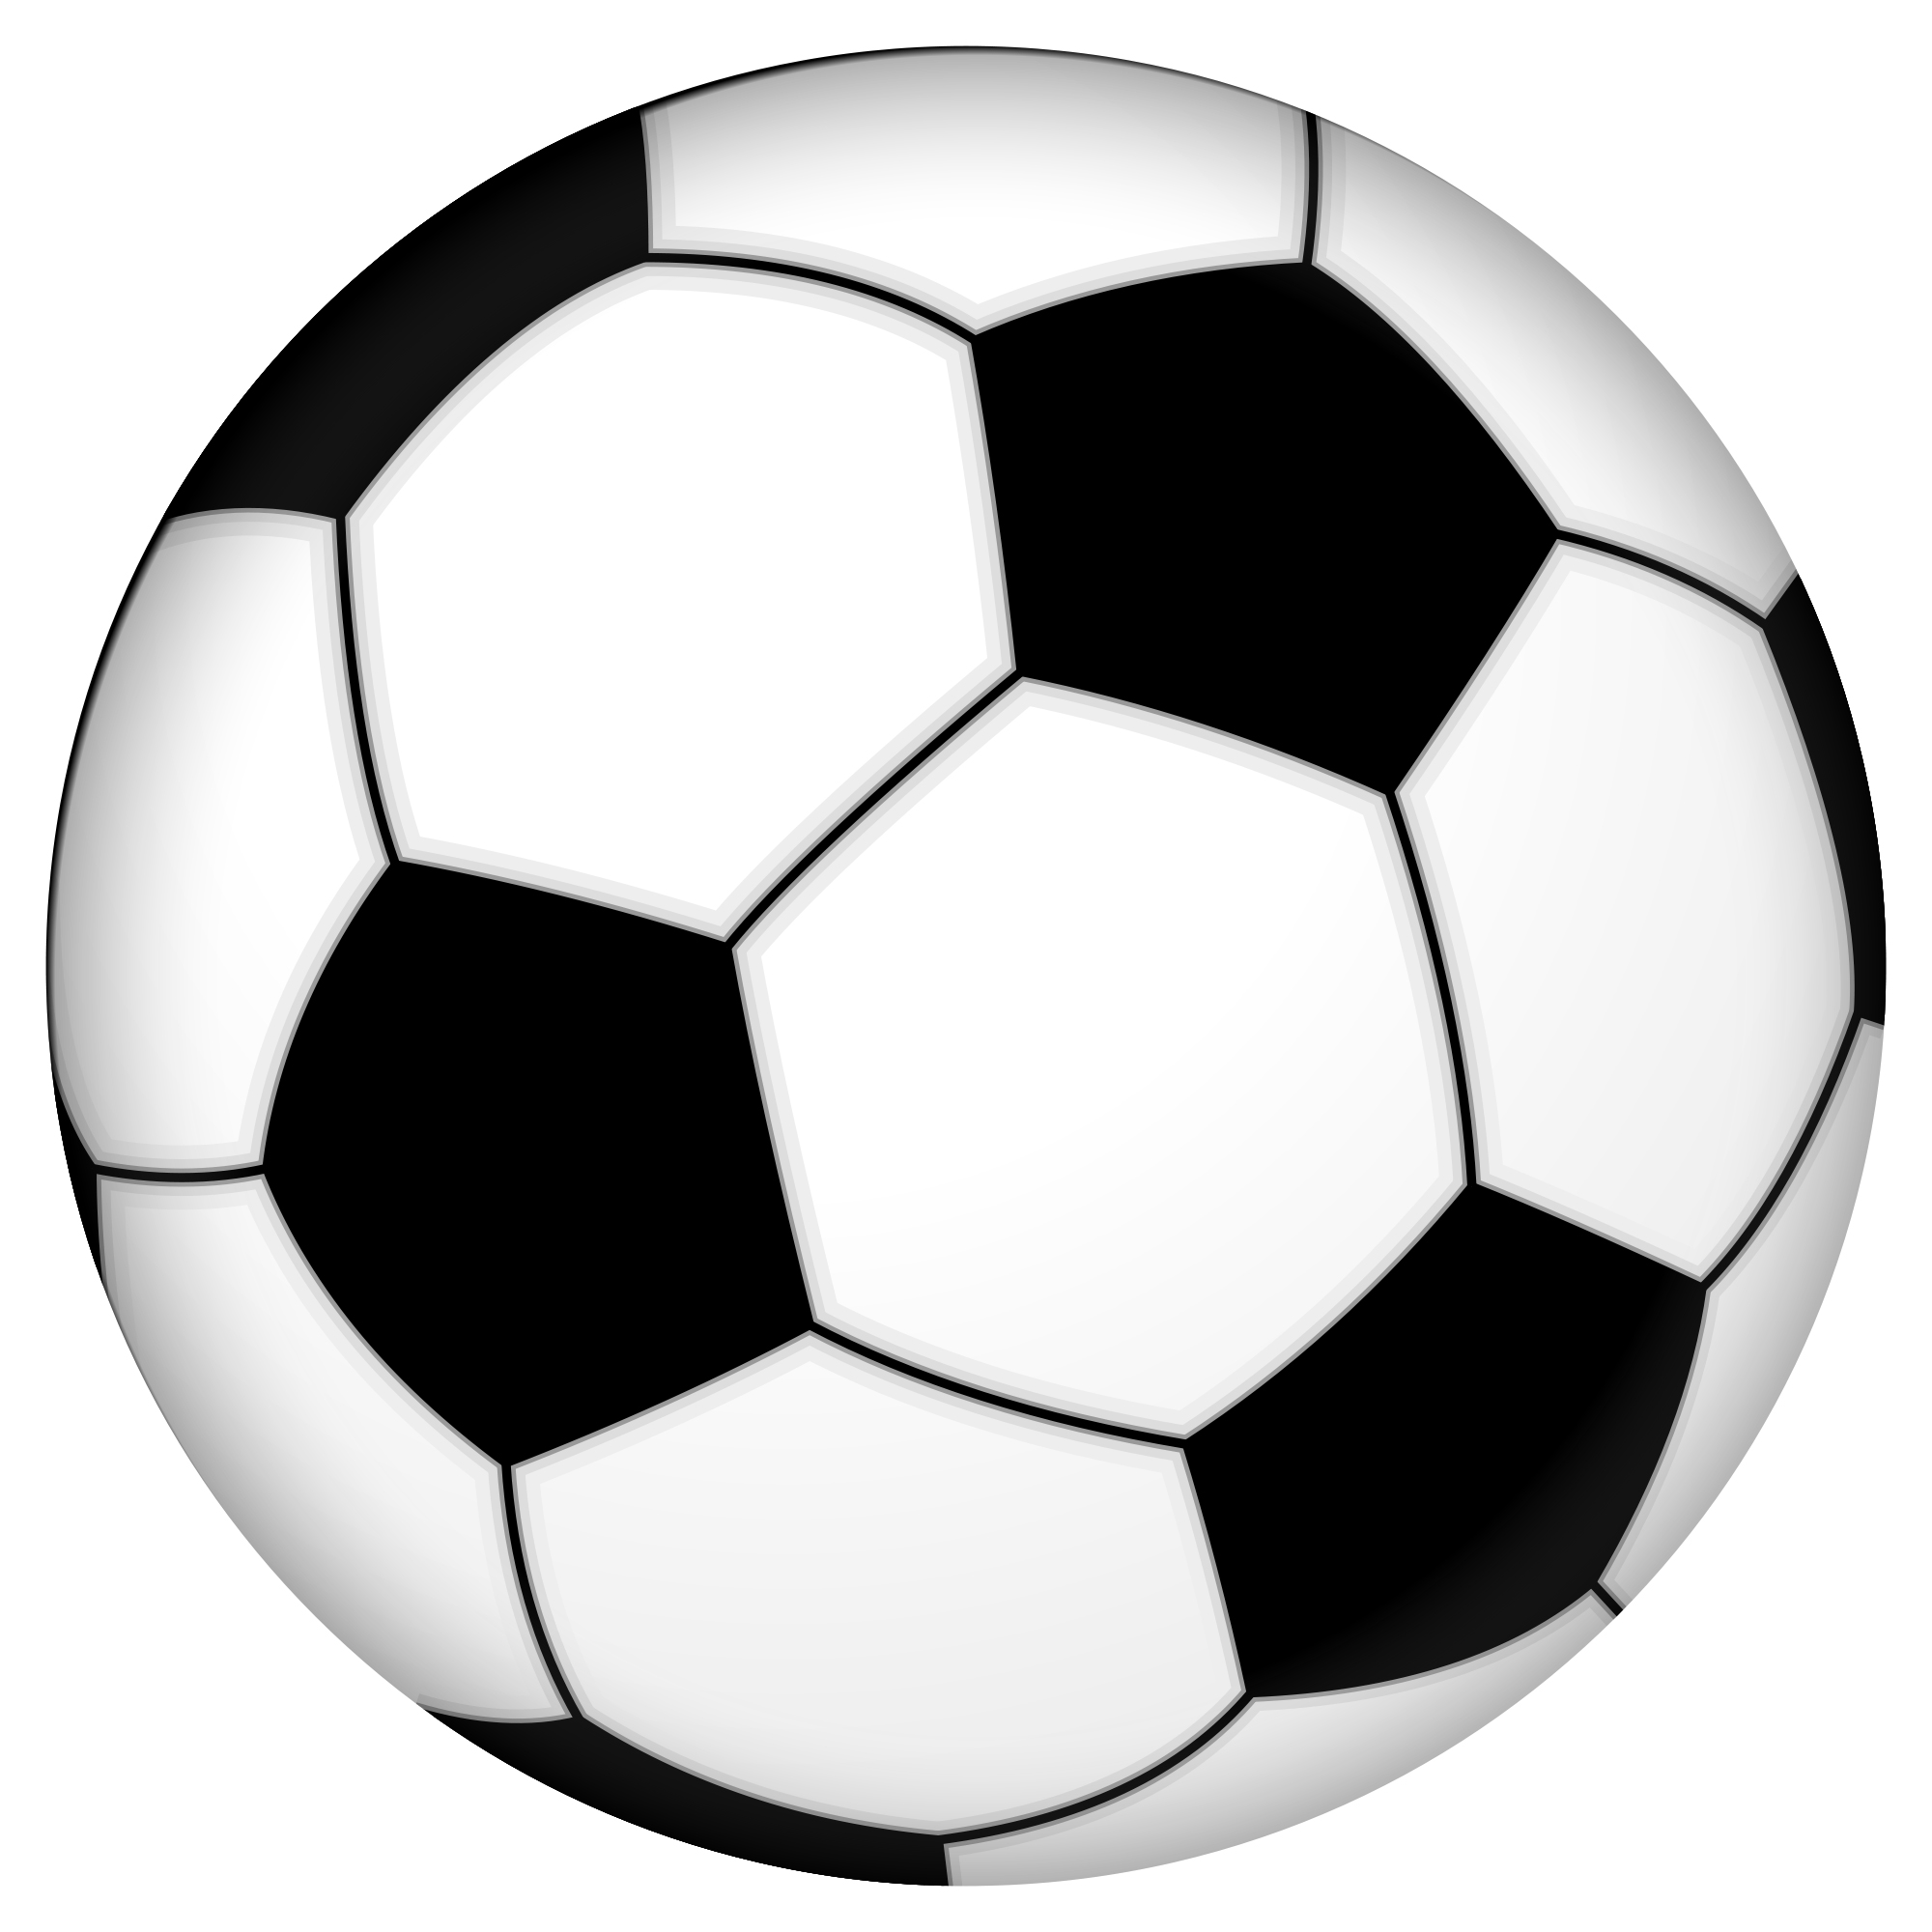 Clip Art Soccer Ball & Clip Art Soccer Ball Clip Art Images.